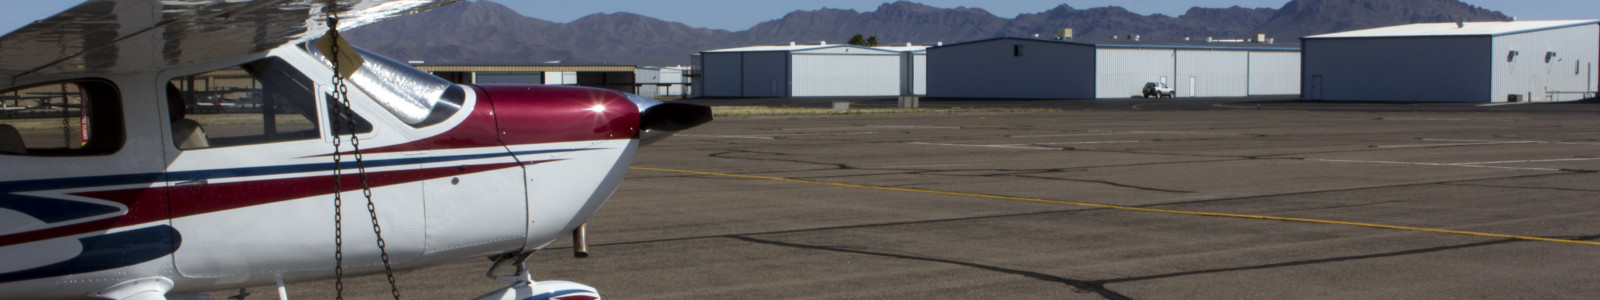 Information fly tucson. Airport clipart airfield